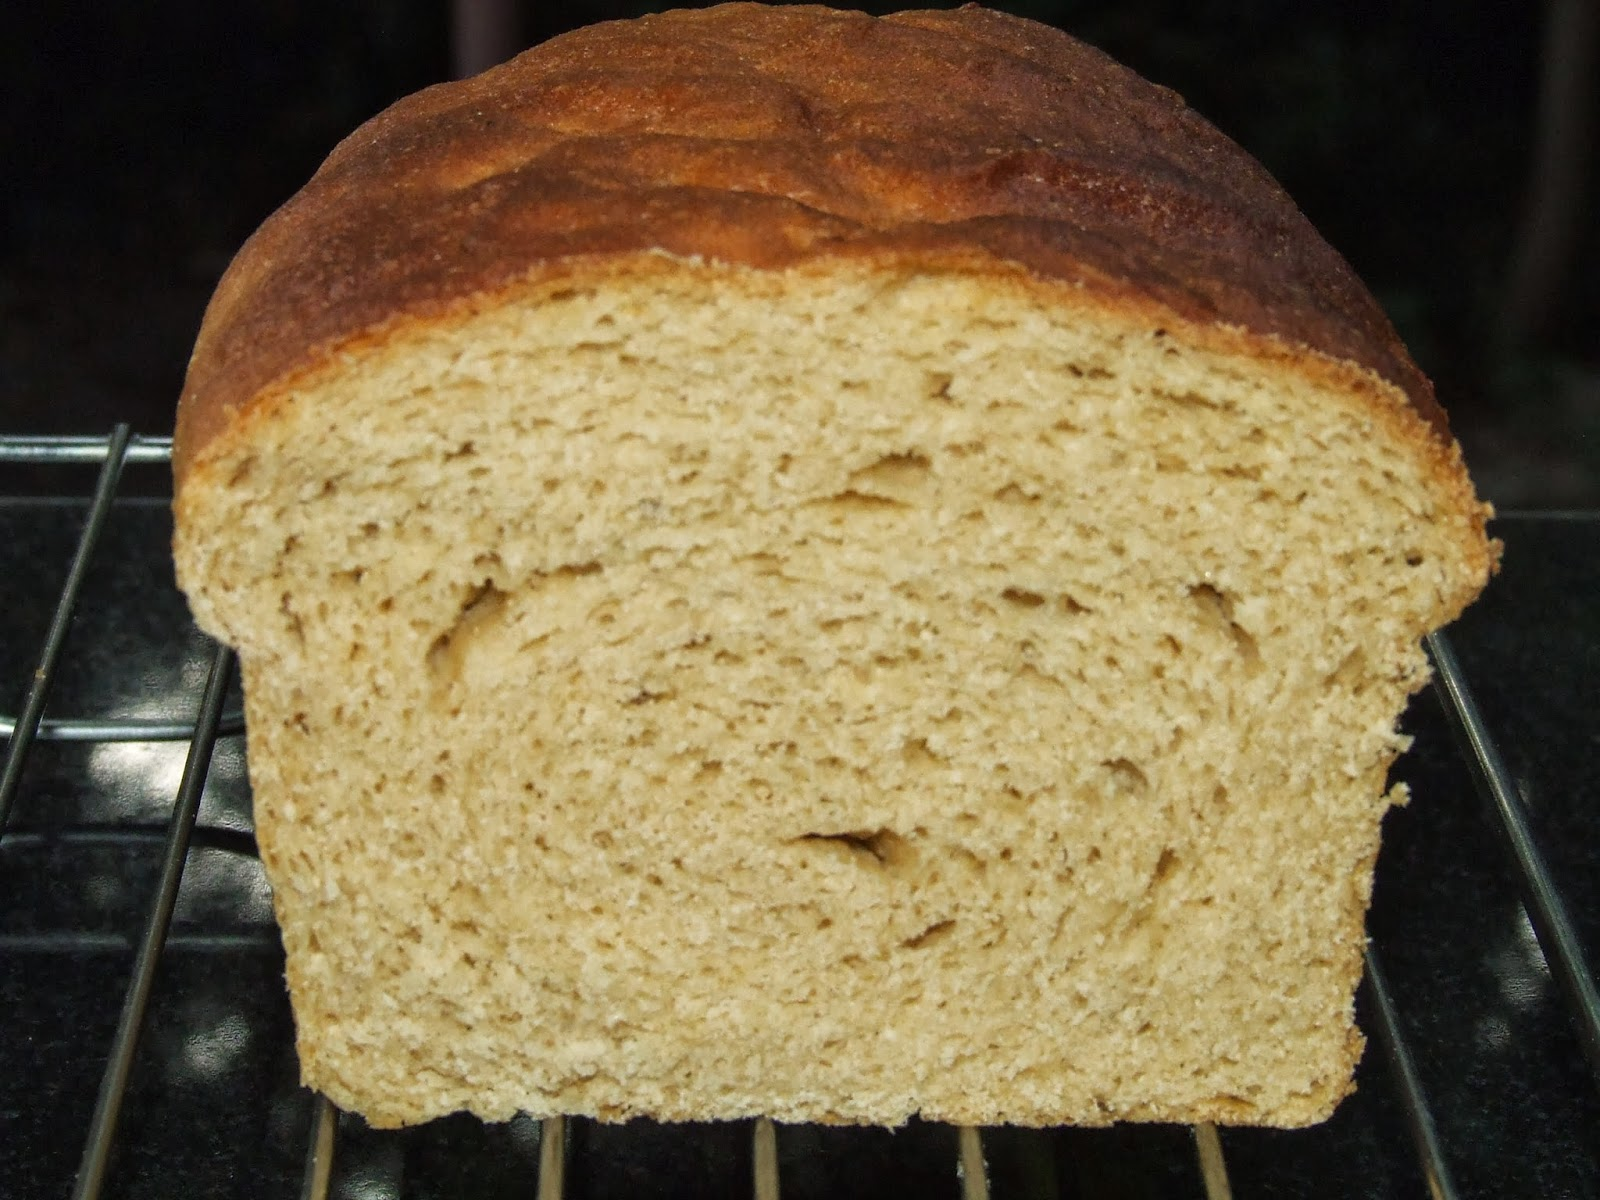 ... flavor of honey and hence, the name 100% Whole Wheat and Honey Bread